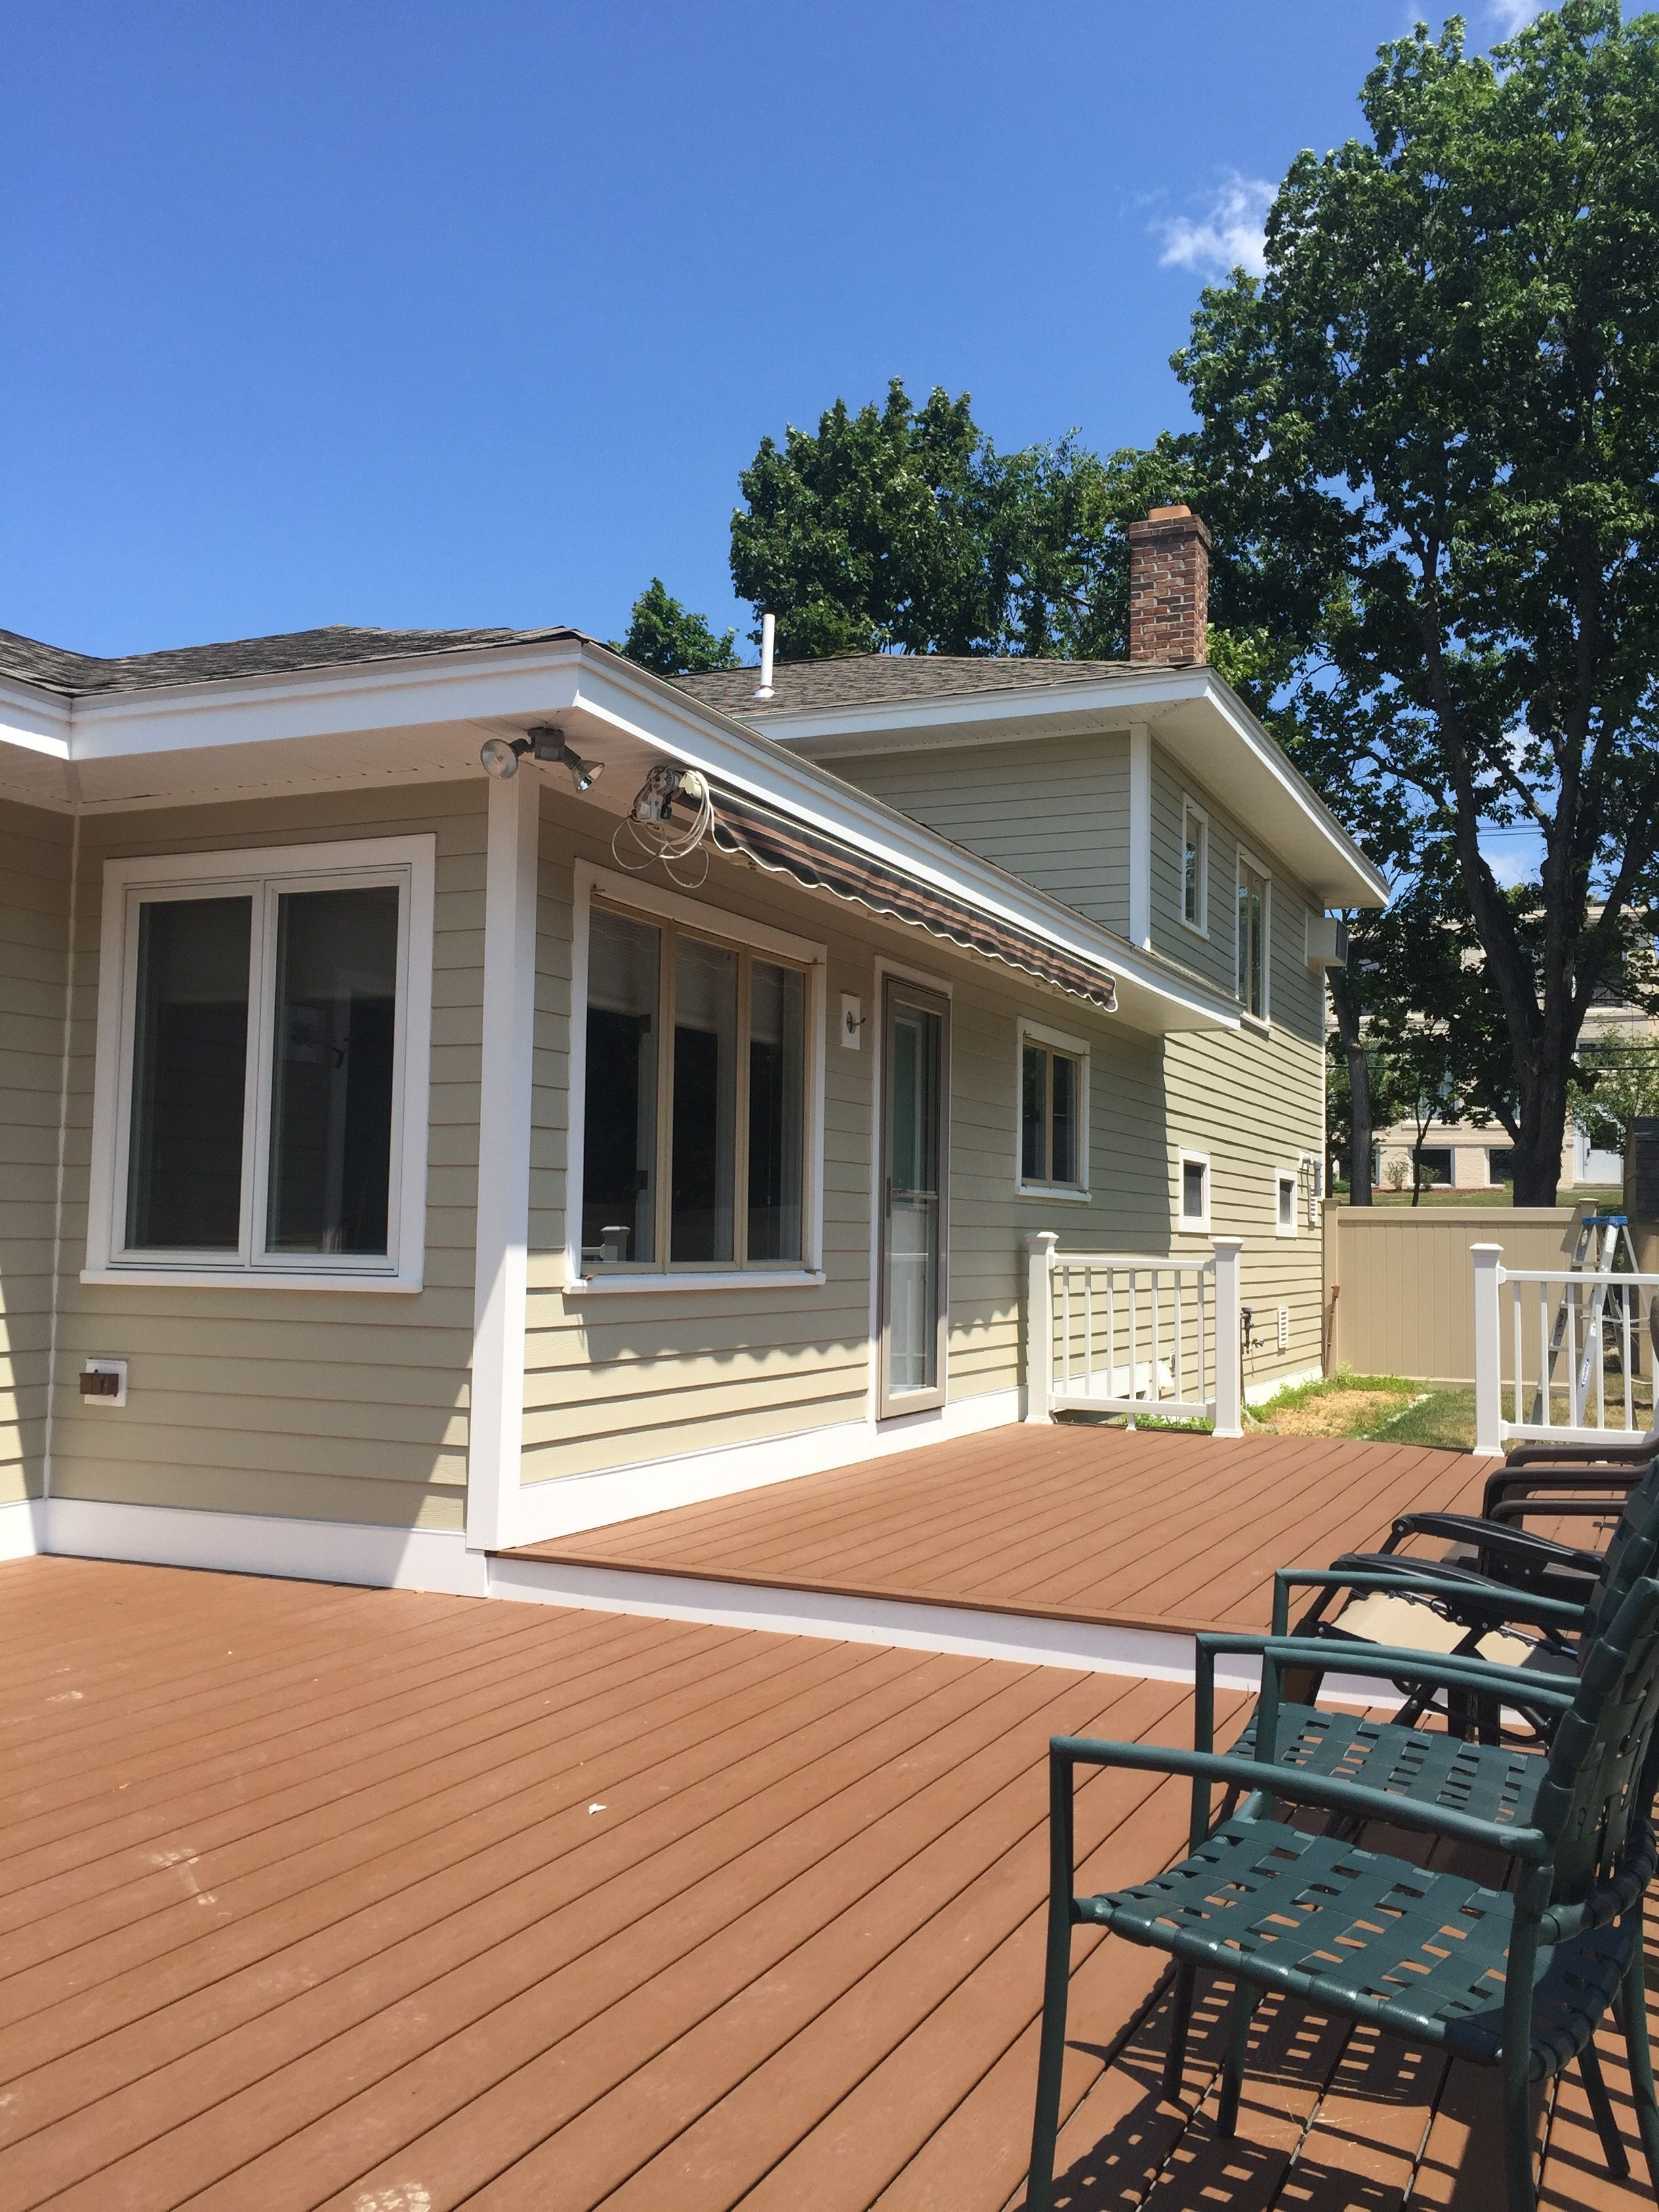 Pbs Installed James Hardie Fiber Cement Siding Hardie Plank With Hardie House Wrap Around The Entire Dwelling And Tape Hardie Plank House Exterior House Siding